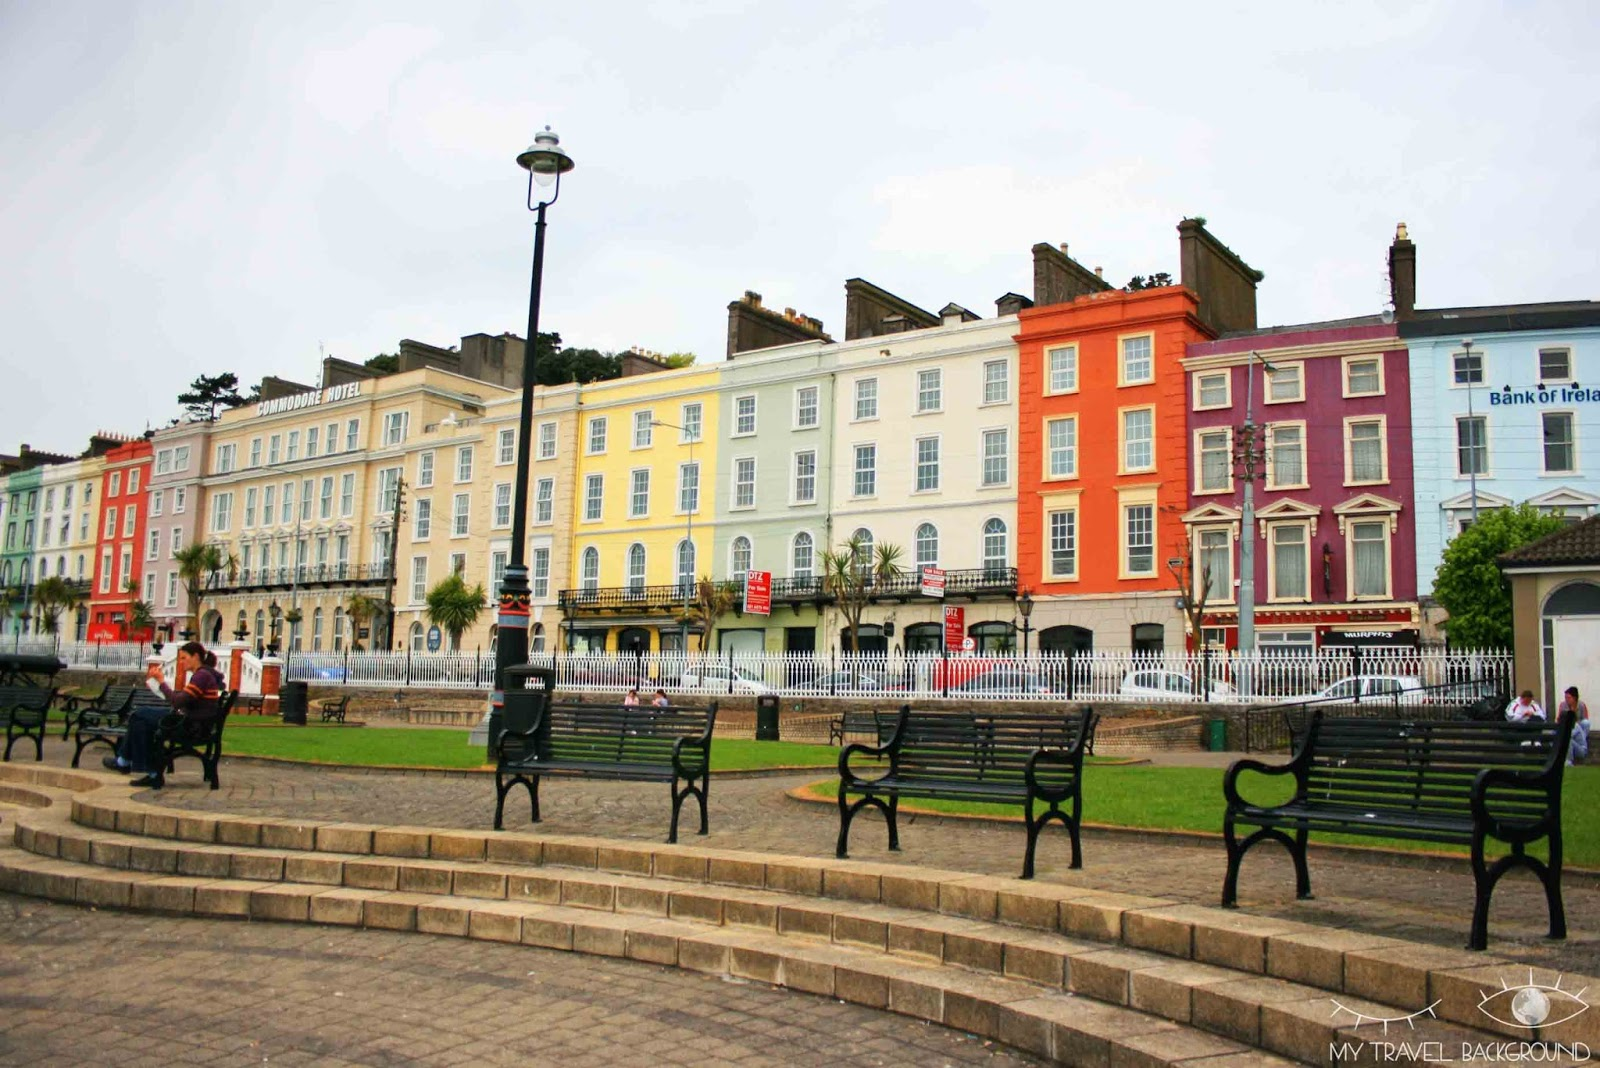 My Travel Background : 3 villes irlandaises, Cobh